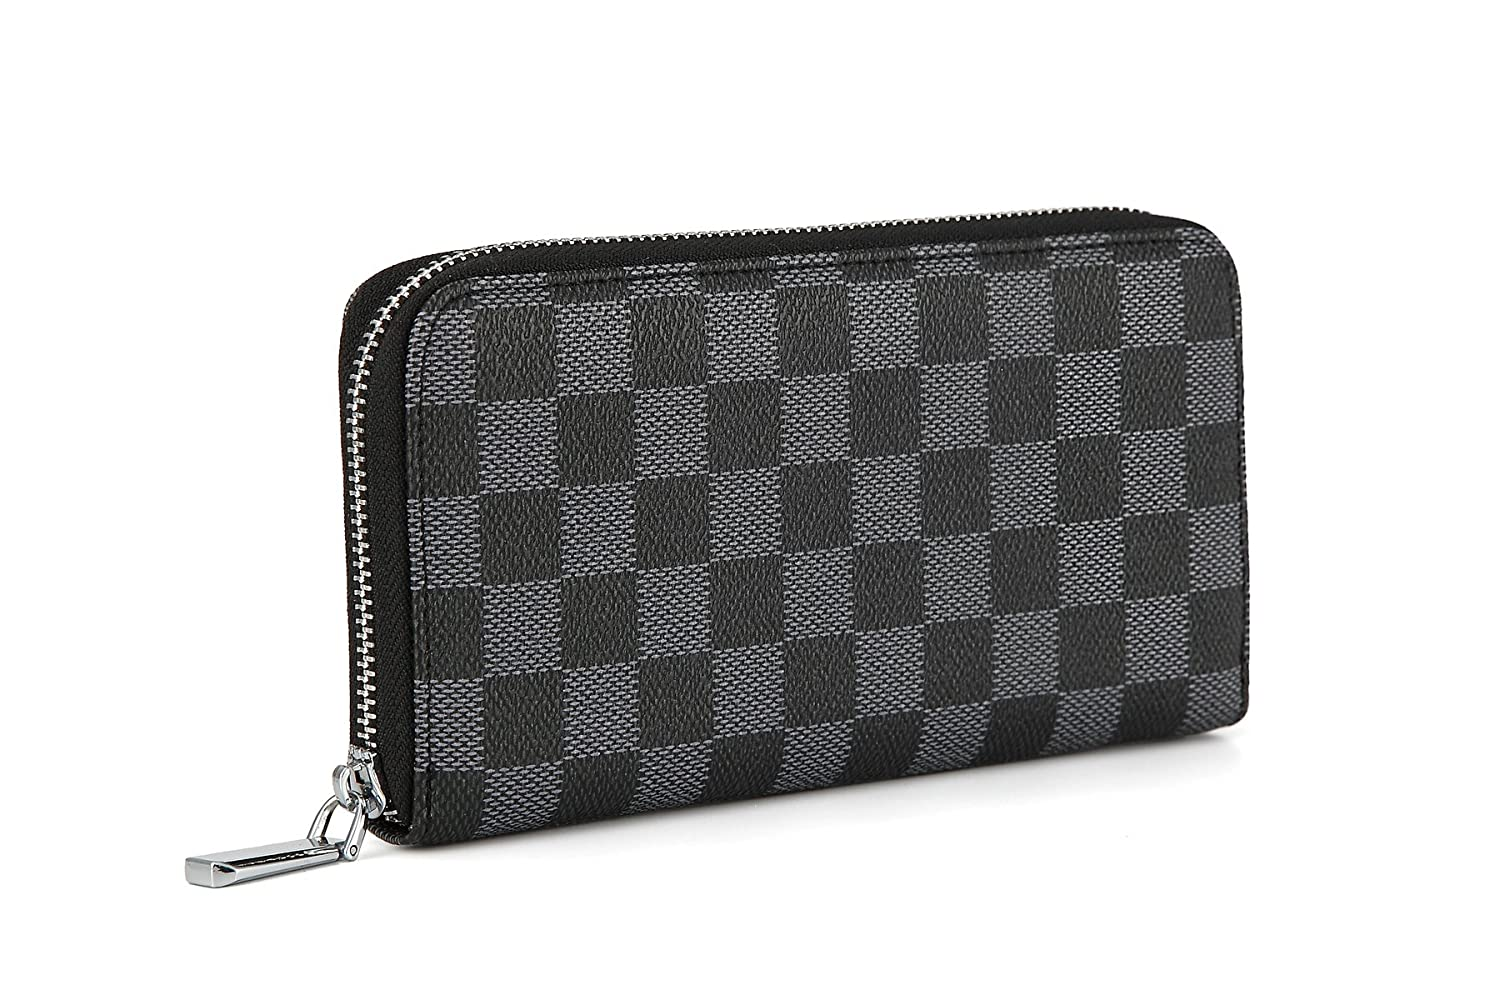 618da07355ad Daisy Rose Women s Checkered Zip Around Wallet and Phone Clutch - RFID  Blocking with Card Holder Organizer -PU Vegan Leather